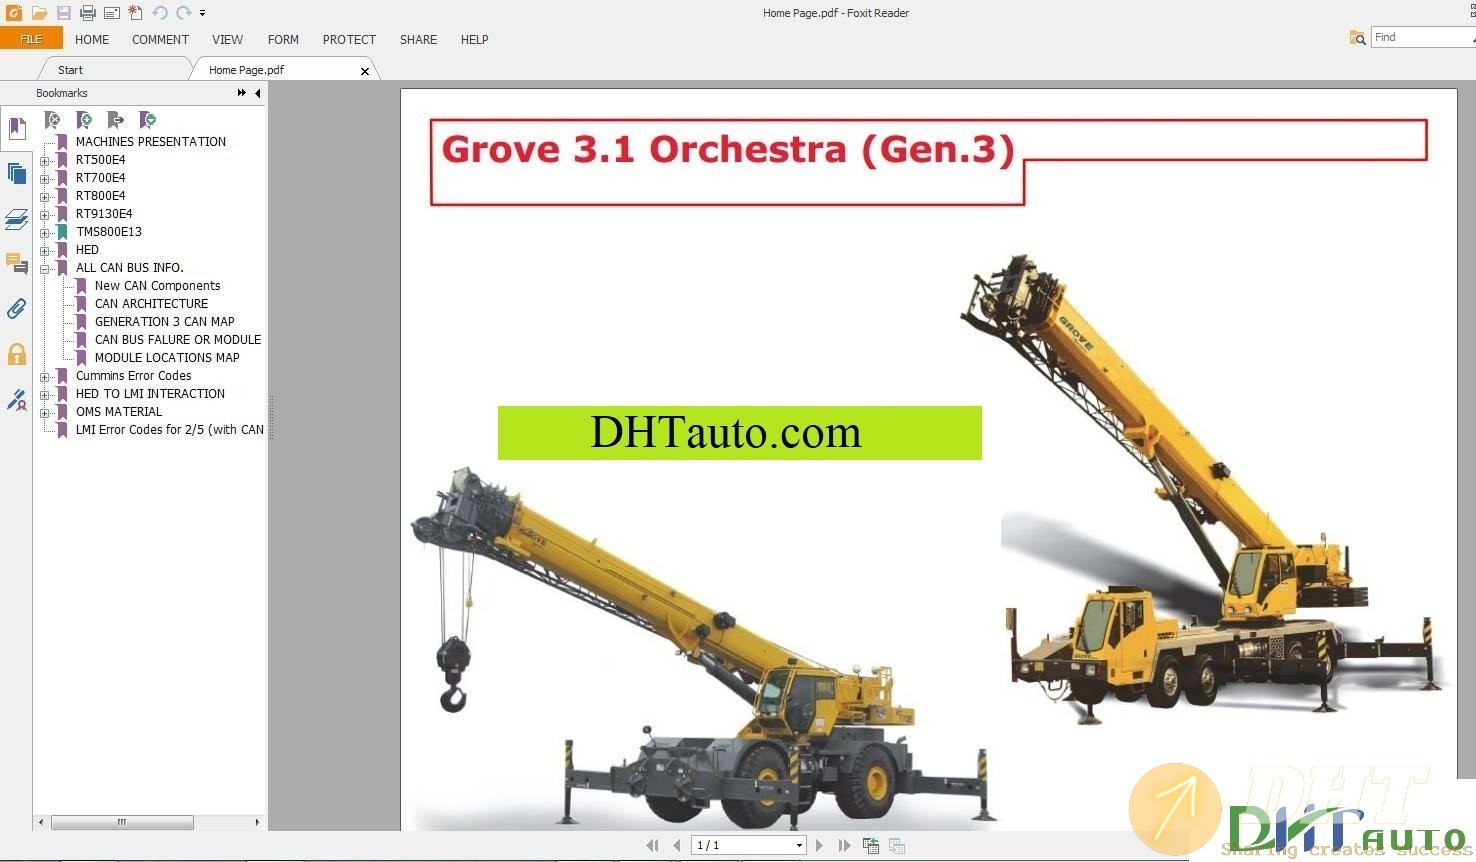 Manitowoc-Grove-Full-Set-Manual-6.jpg